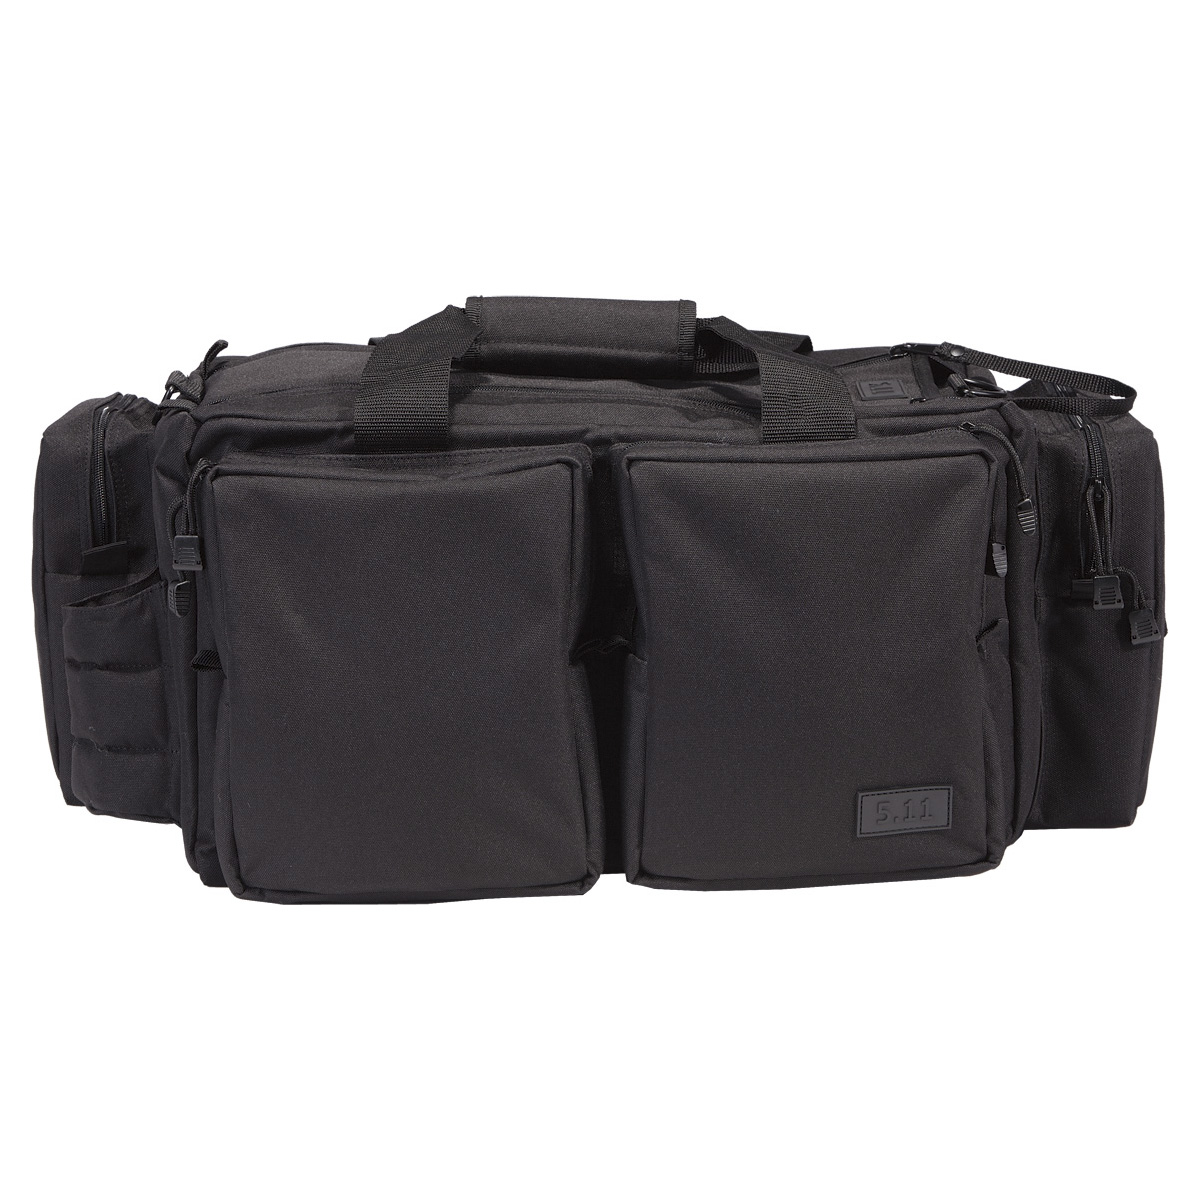 5.11 Tactical Range Ready Bag, Black thumbnail